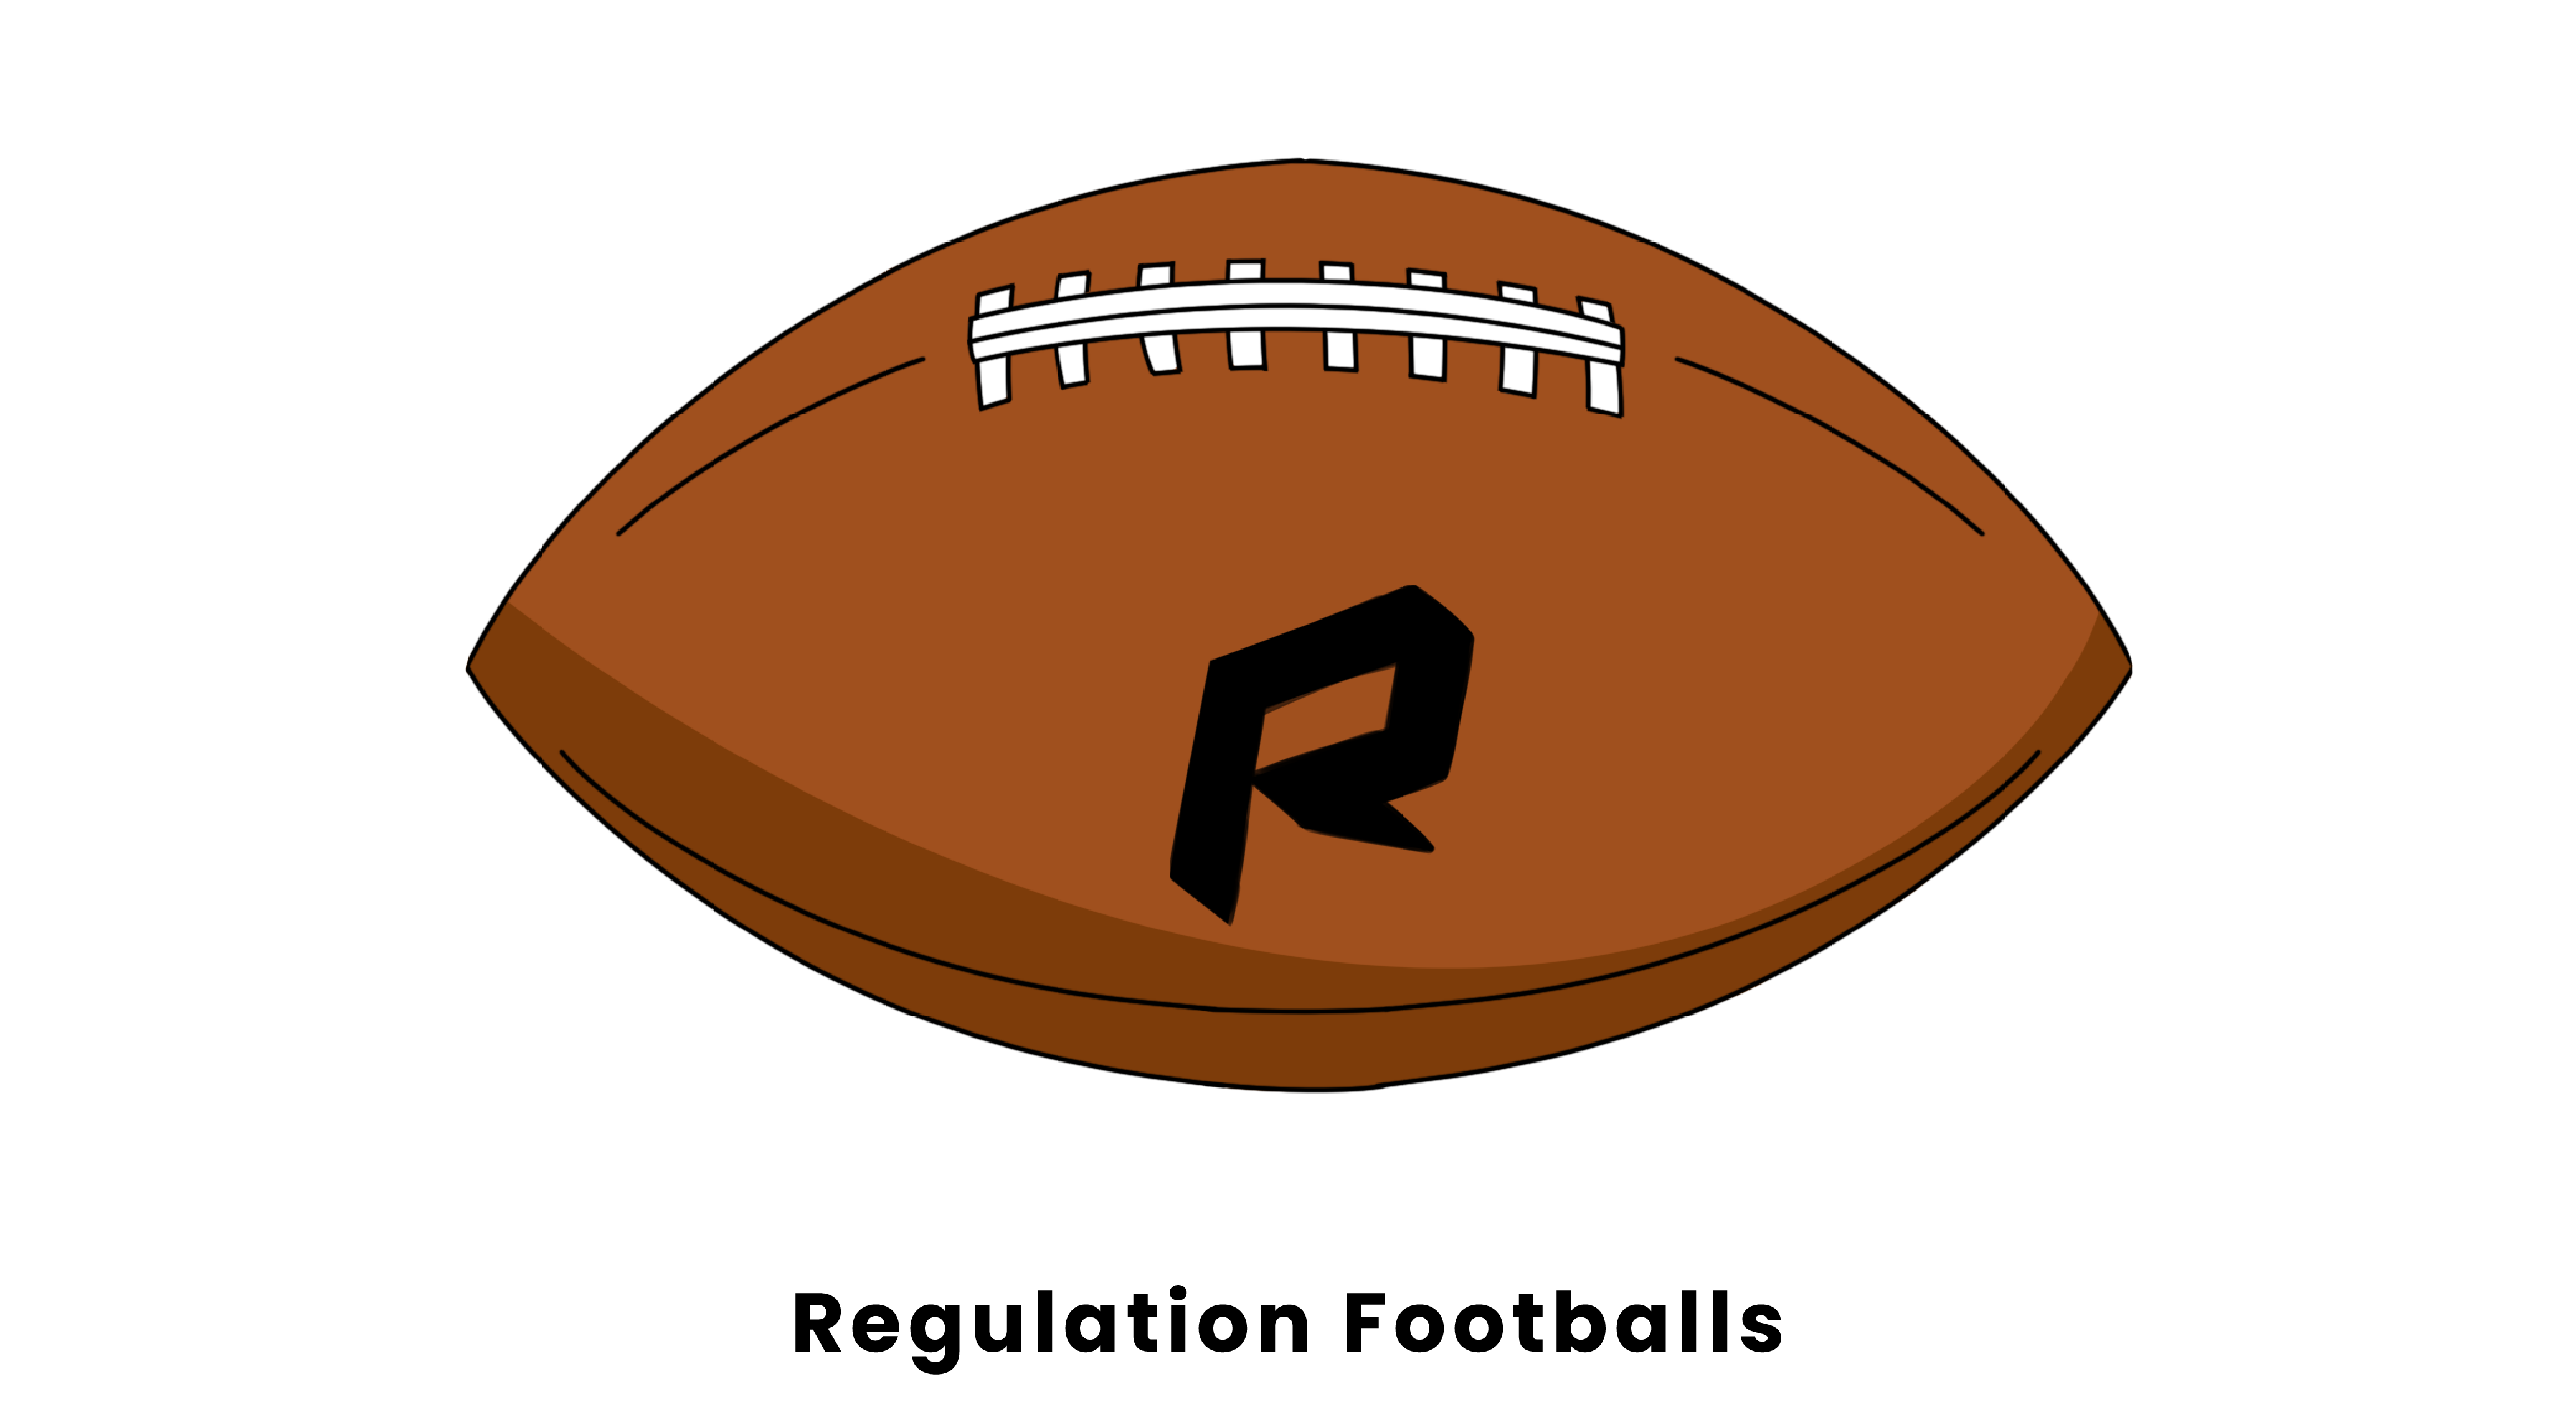 regulation footballs